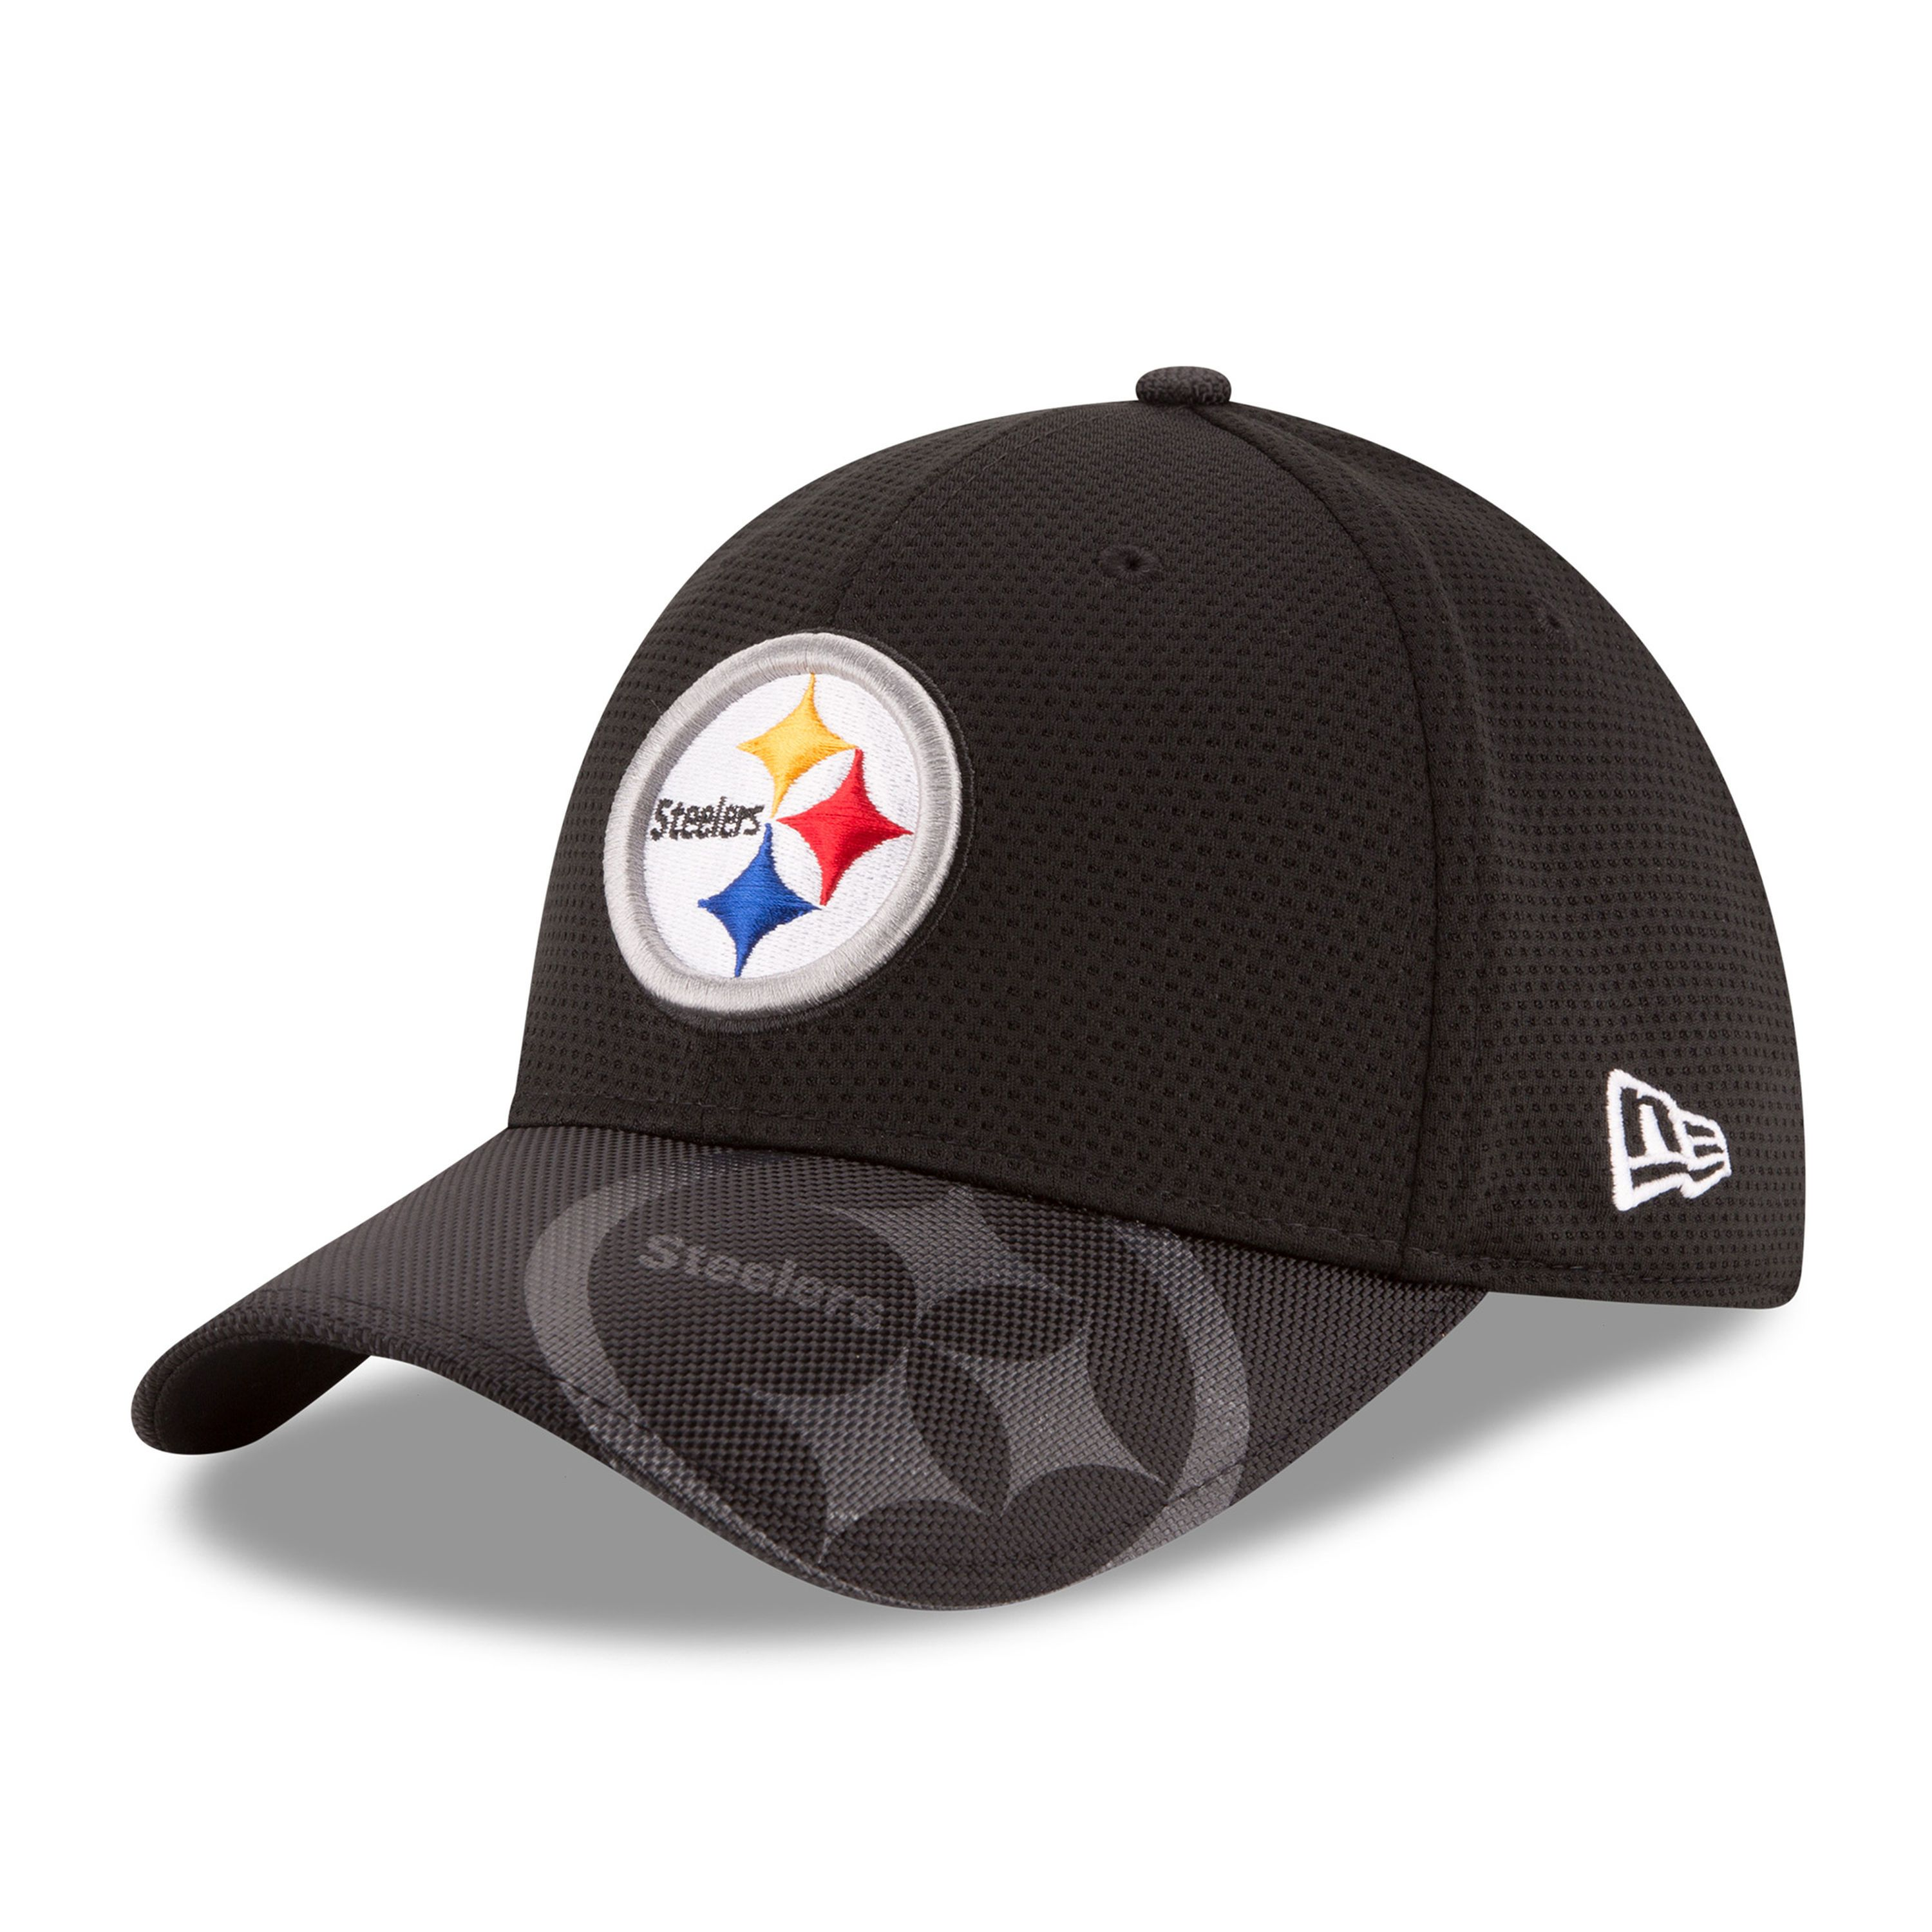 a63835a38a9dd Pittsburgh Steelers New Era 2016 Sideline Official 39THIRTY Flex Hat -  Black Jerseys Nfl